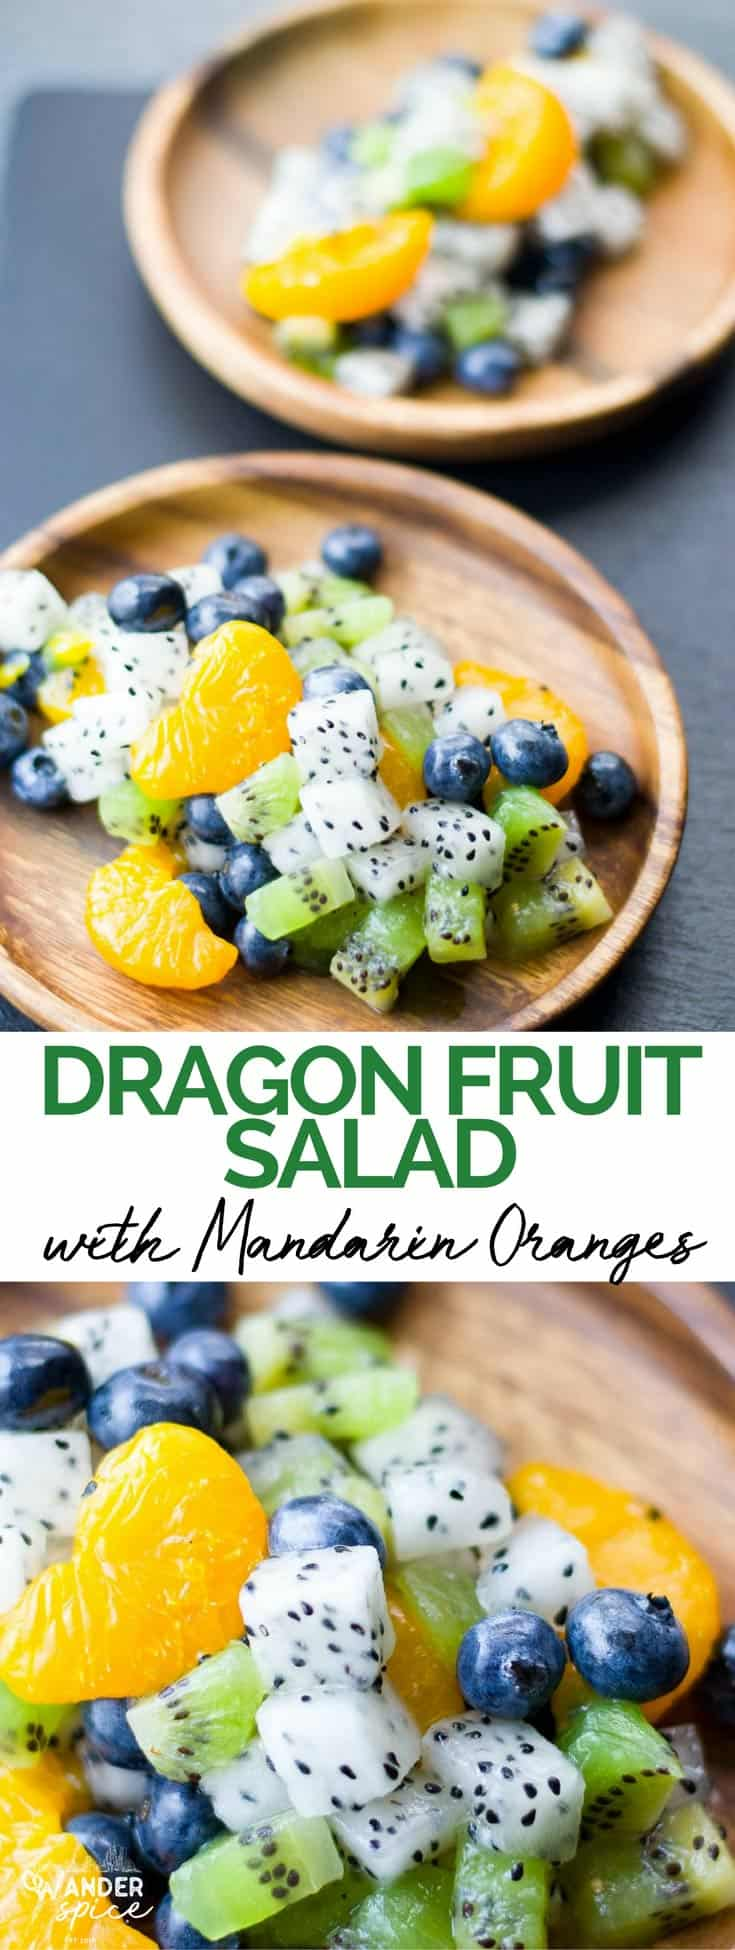 Dragon Fruit Salad Recipe with Mandarin Oranges and Kiwis. Easy and fast to make.